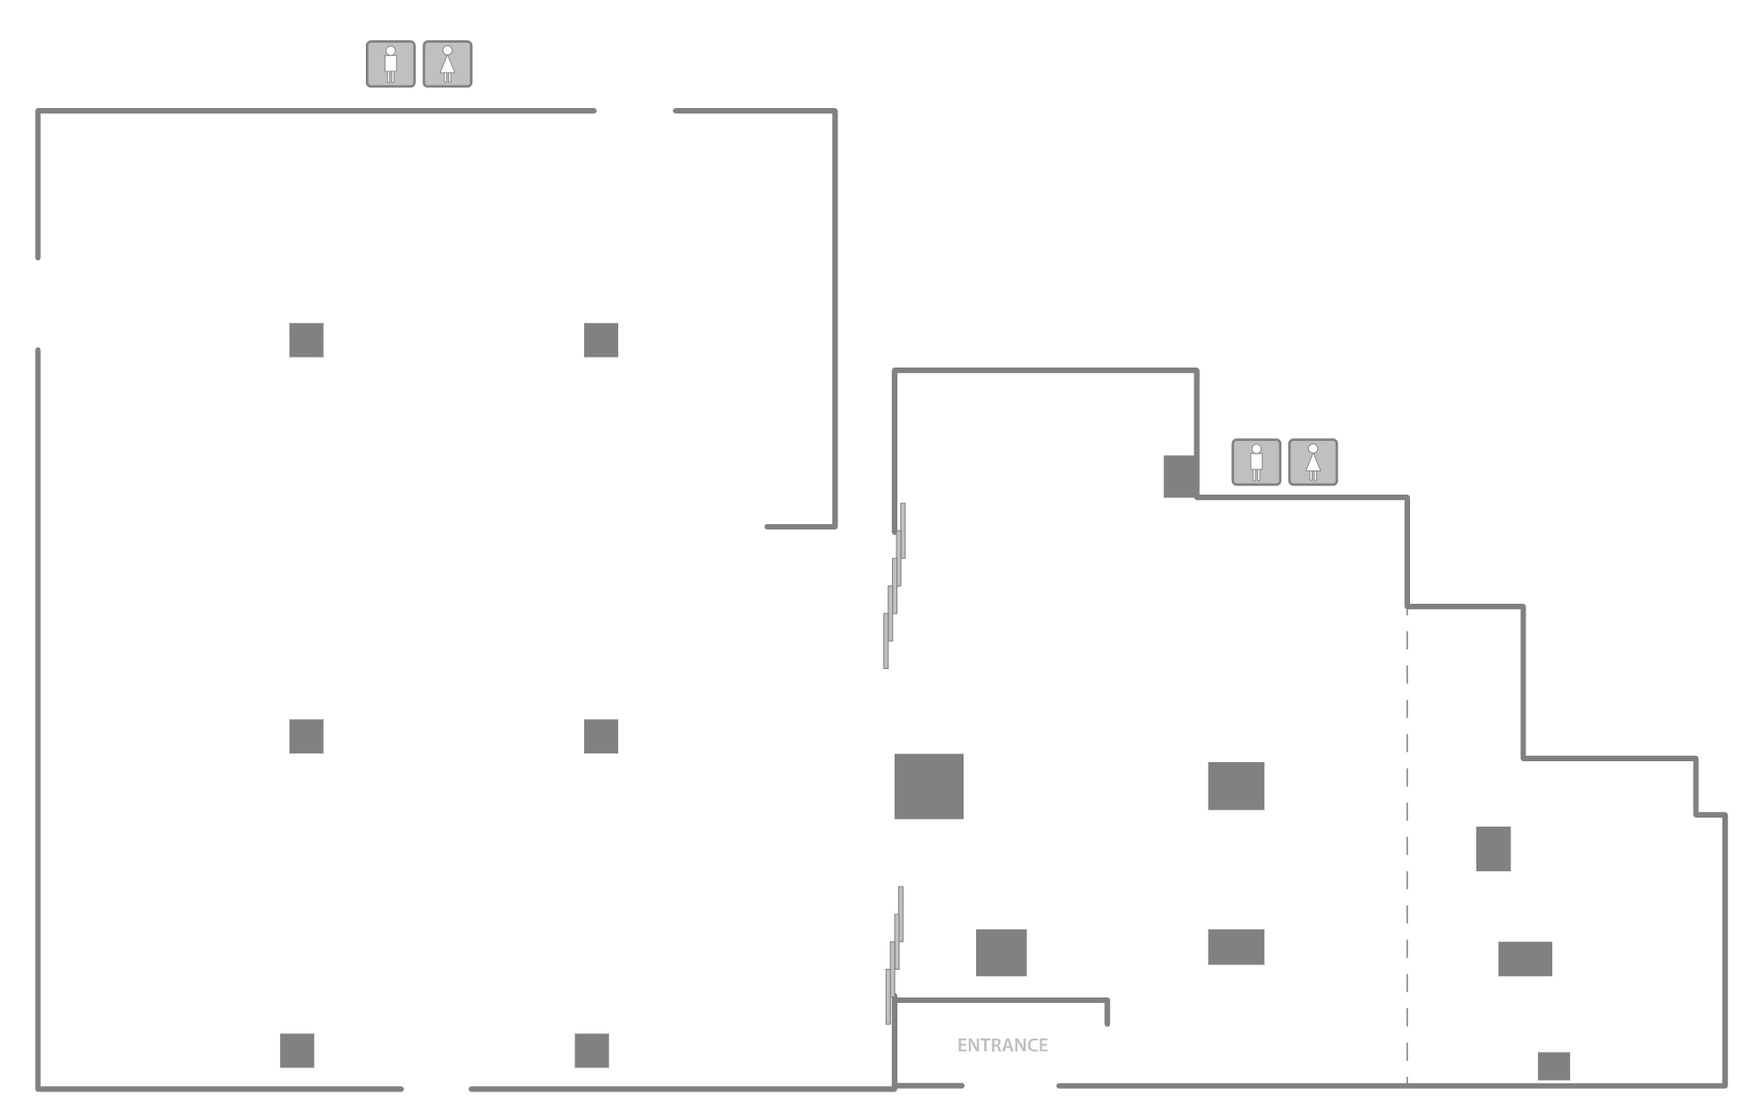 Image of Floor Plan for CNVS Events